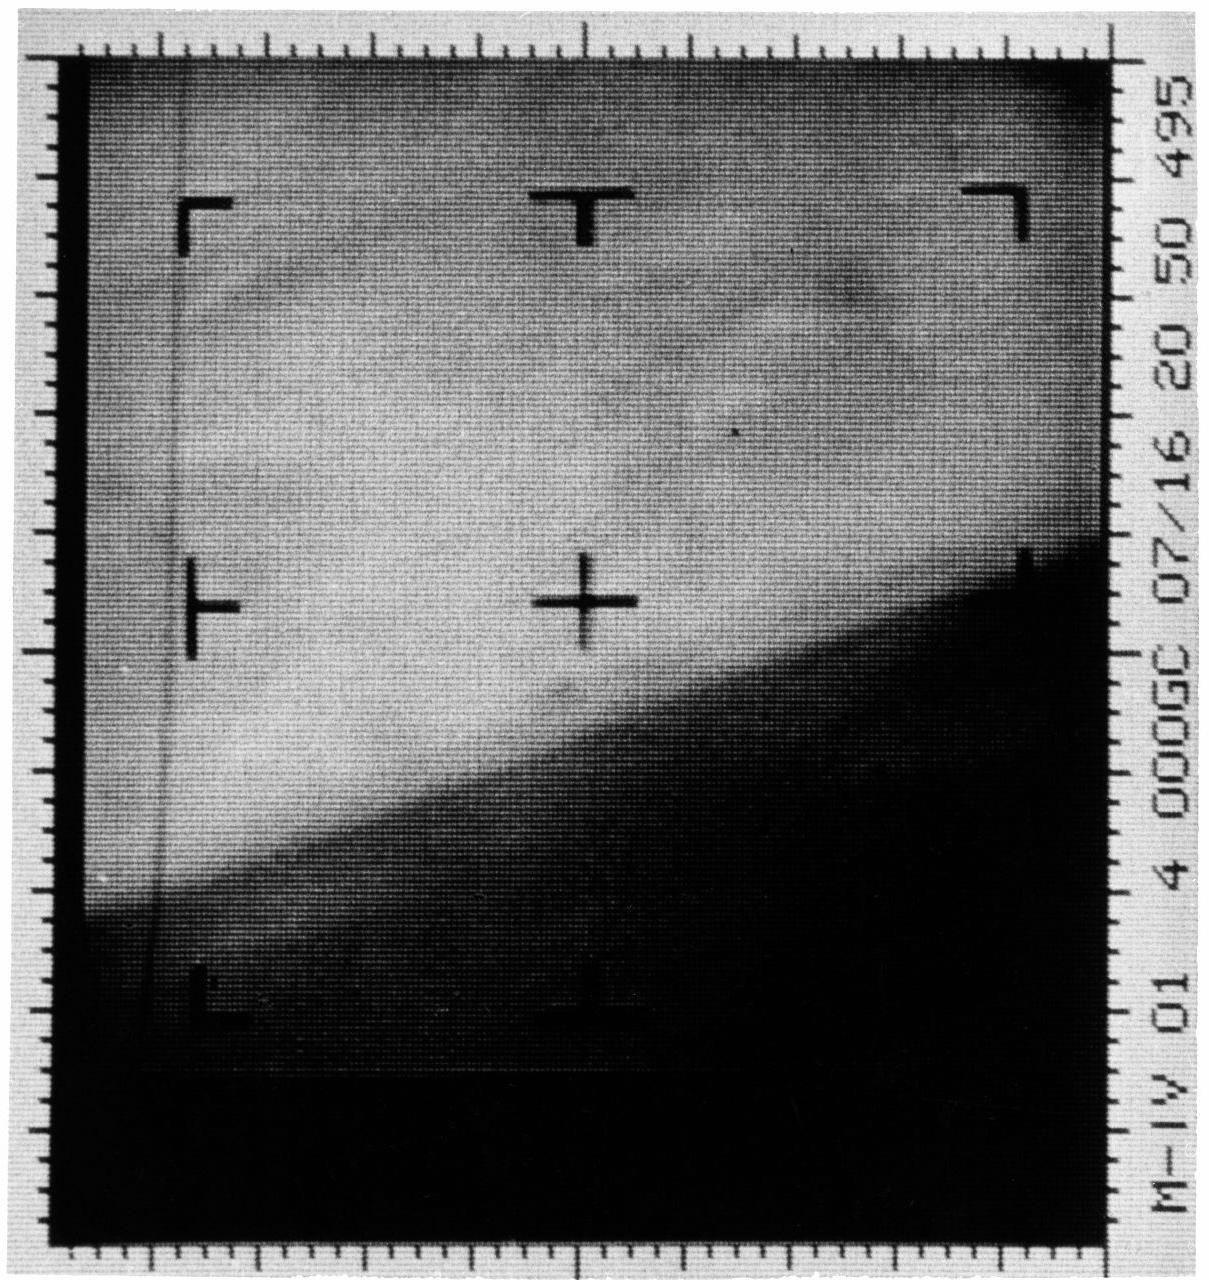 The first Mars photograph and our first close-up of another planet. A representation of digital data radioed by the Mariner 4 spacecraft on 15th July 1965. (Credit: NASA/JPL-Caltech/Dan Goods)